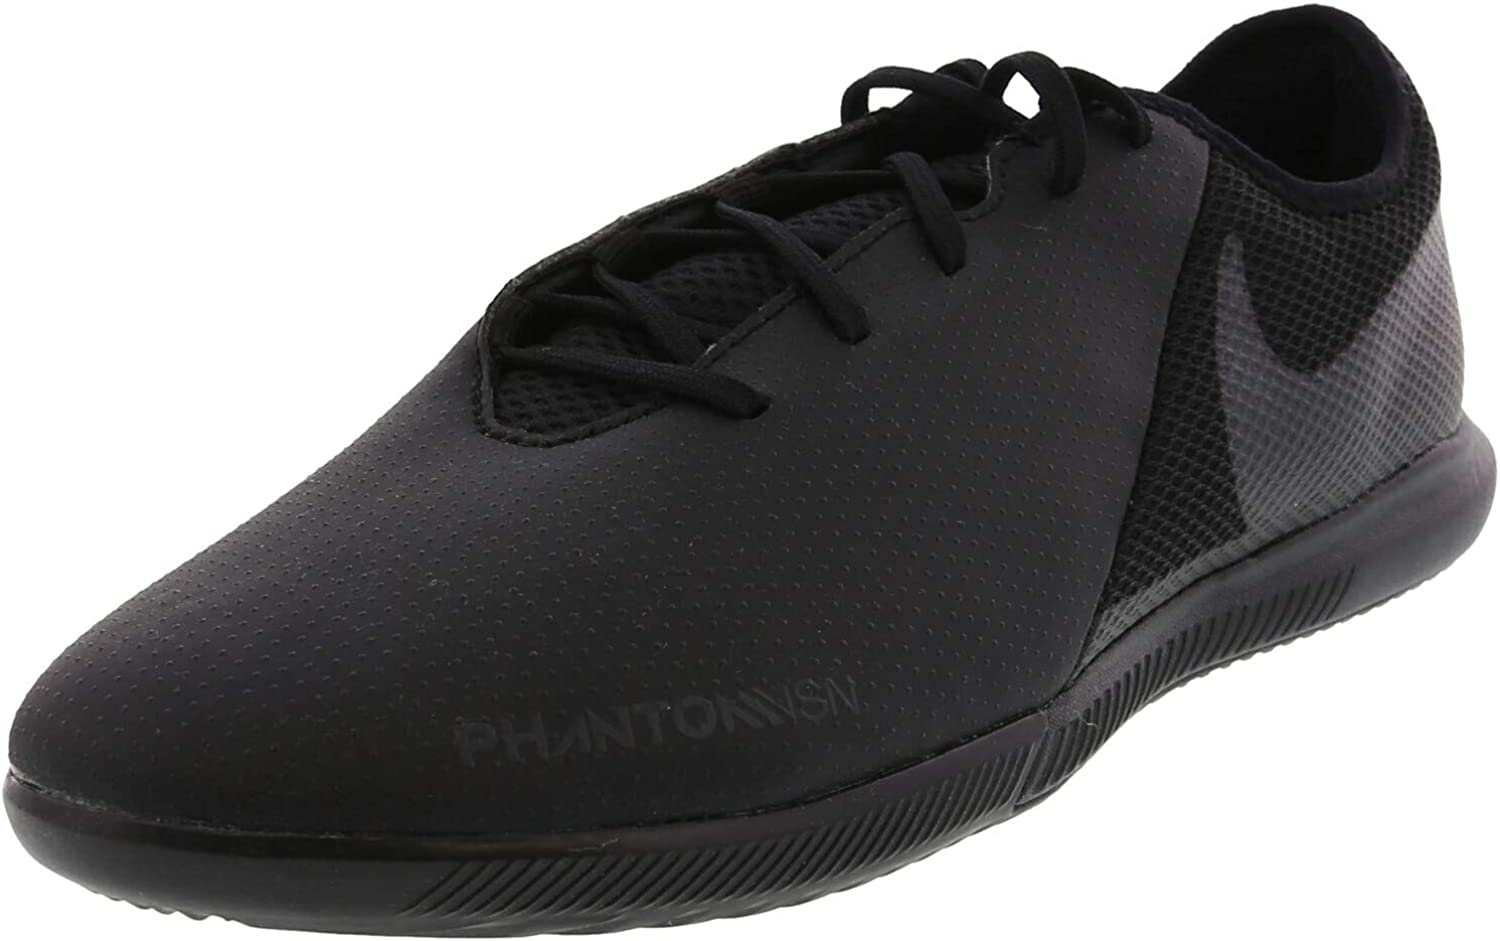 Nike Men's Low-Top San Diego Mall Sneakers Max 80% OFF